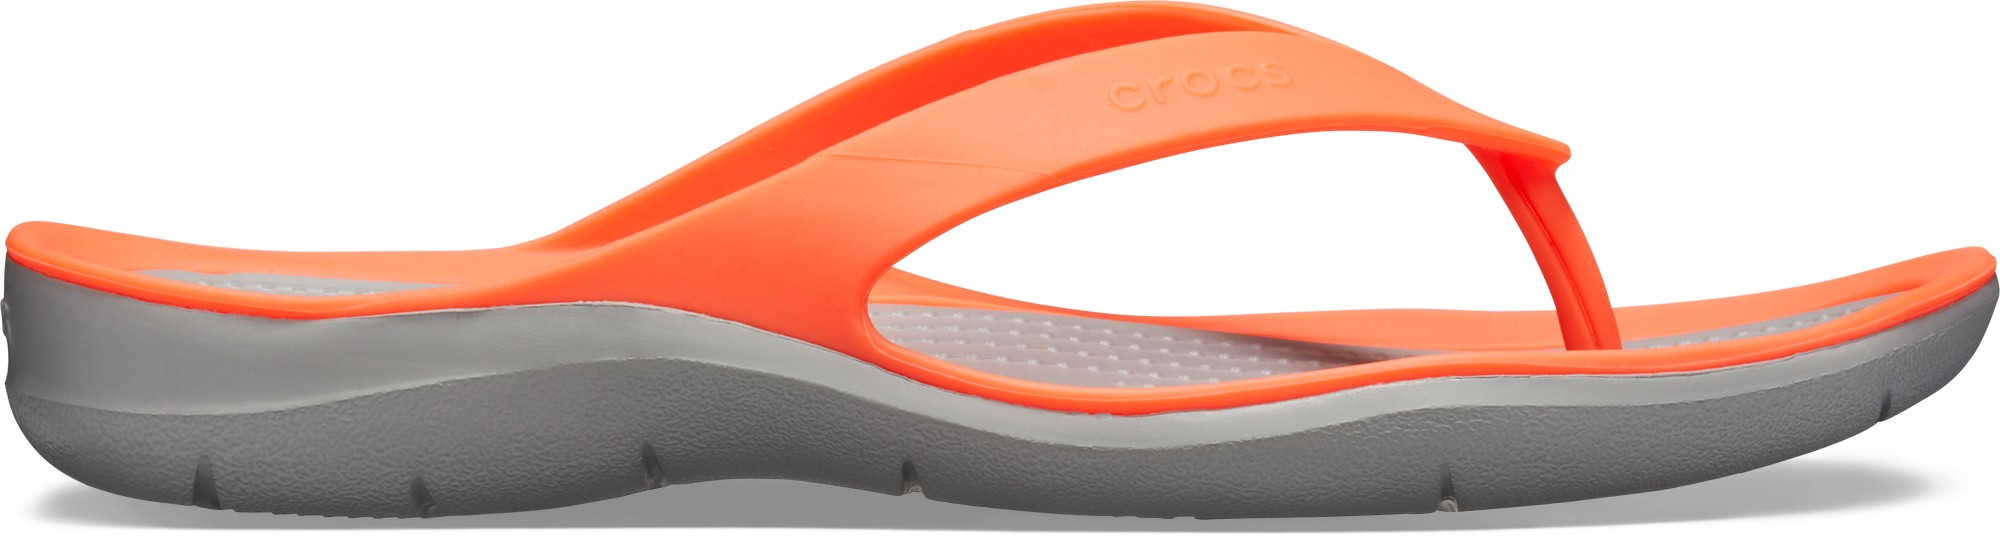 Crocs™ Women's Swiftwater Flip Bright Coral/Light Grey 36,5